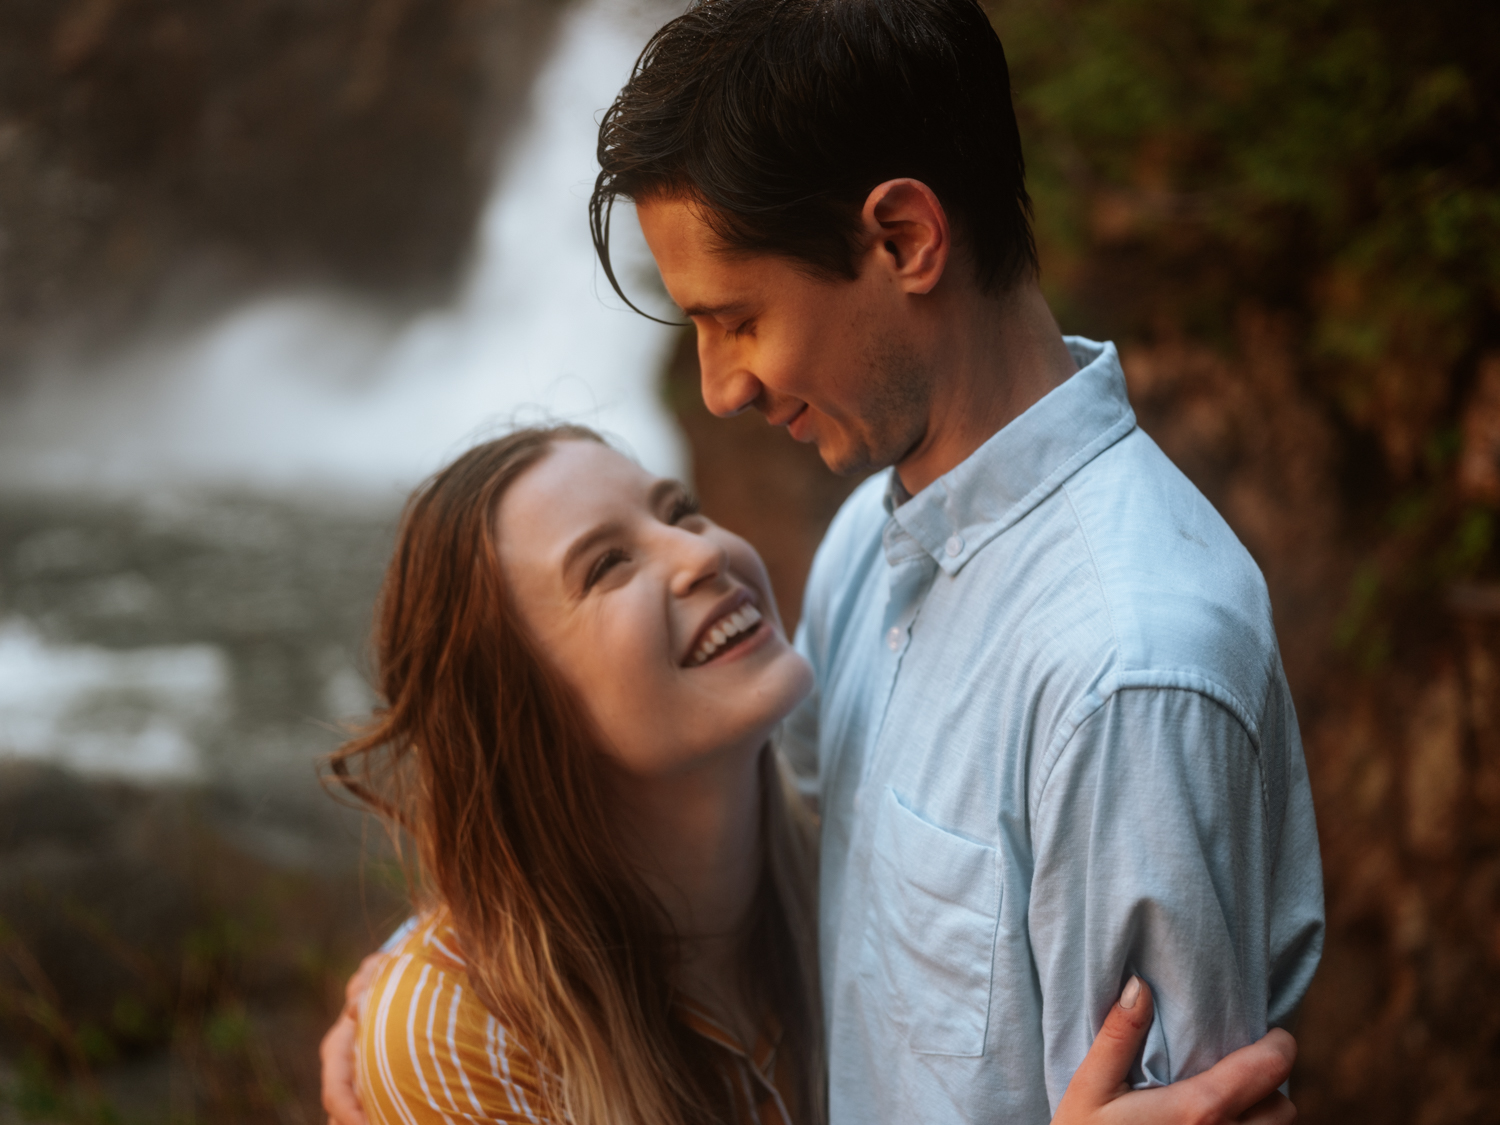 Franklin Falls Washington Engagement Session Stolen Glimpses Seattle Wedding Photographer 36.jpg